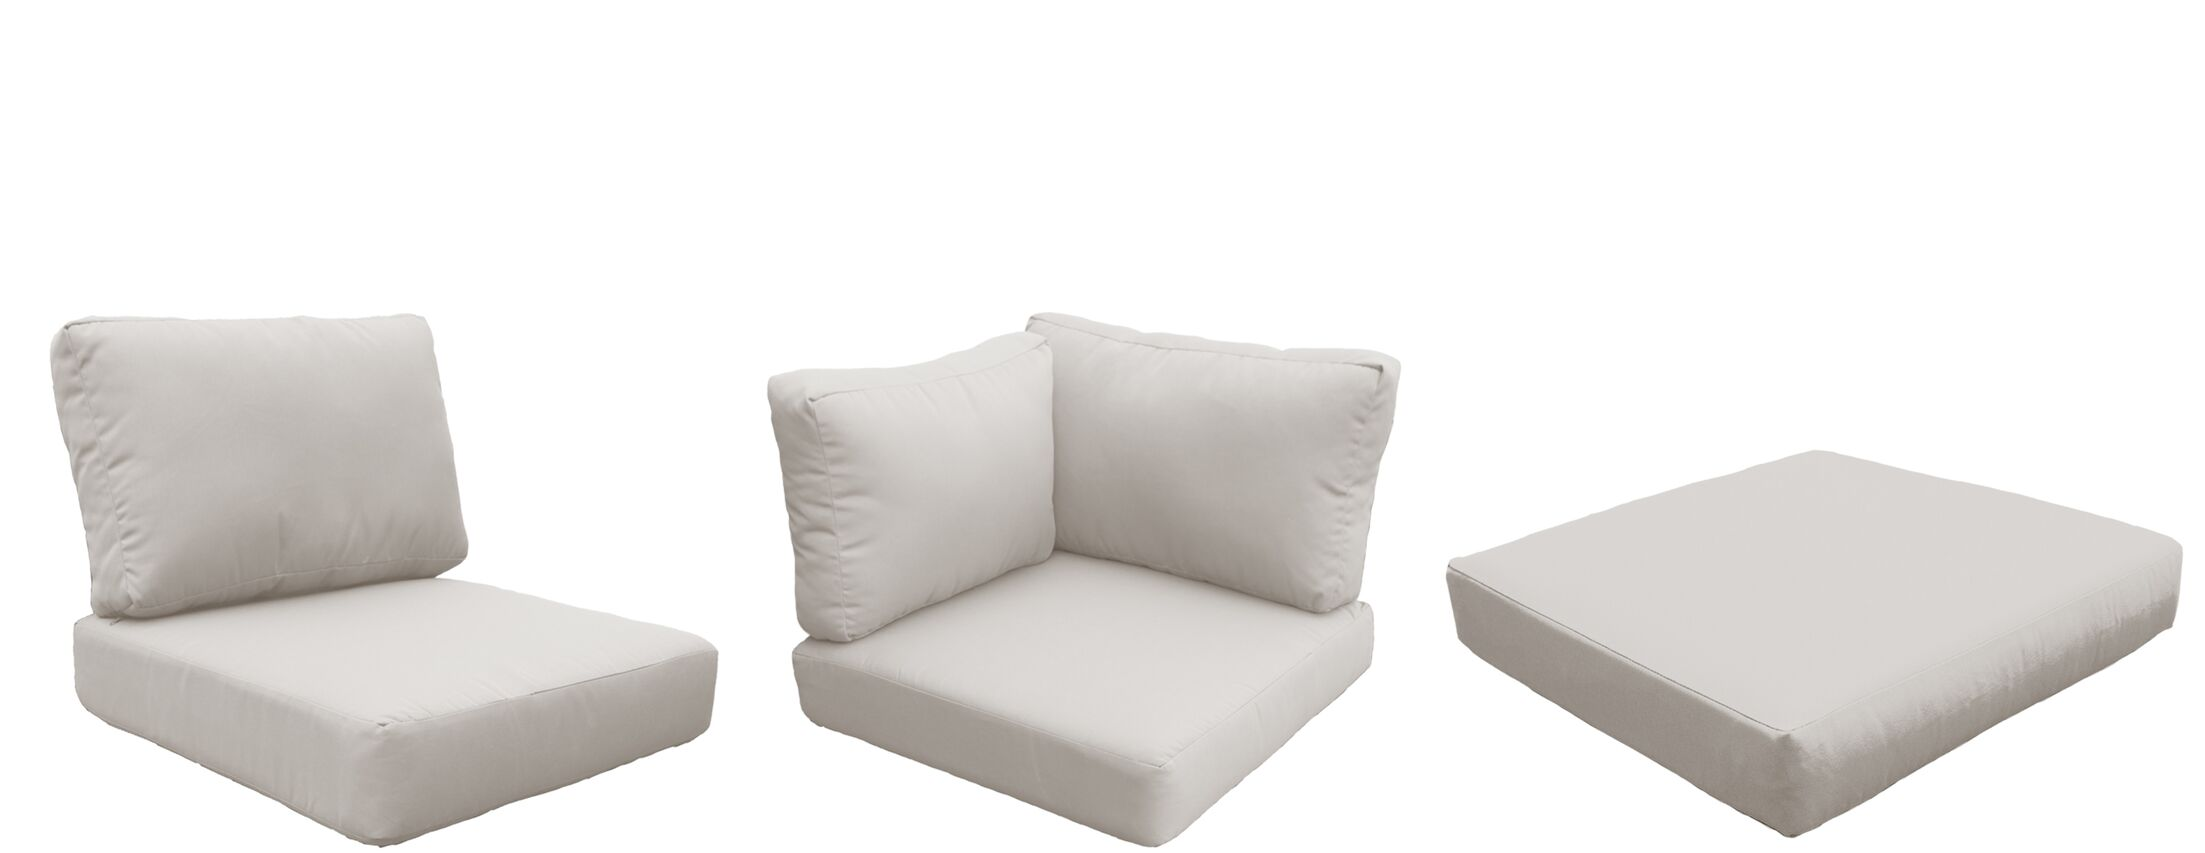 Barbados 21 Piece Outdoor Cushion Set Fabric: Beige